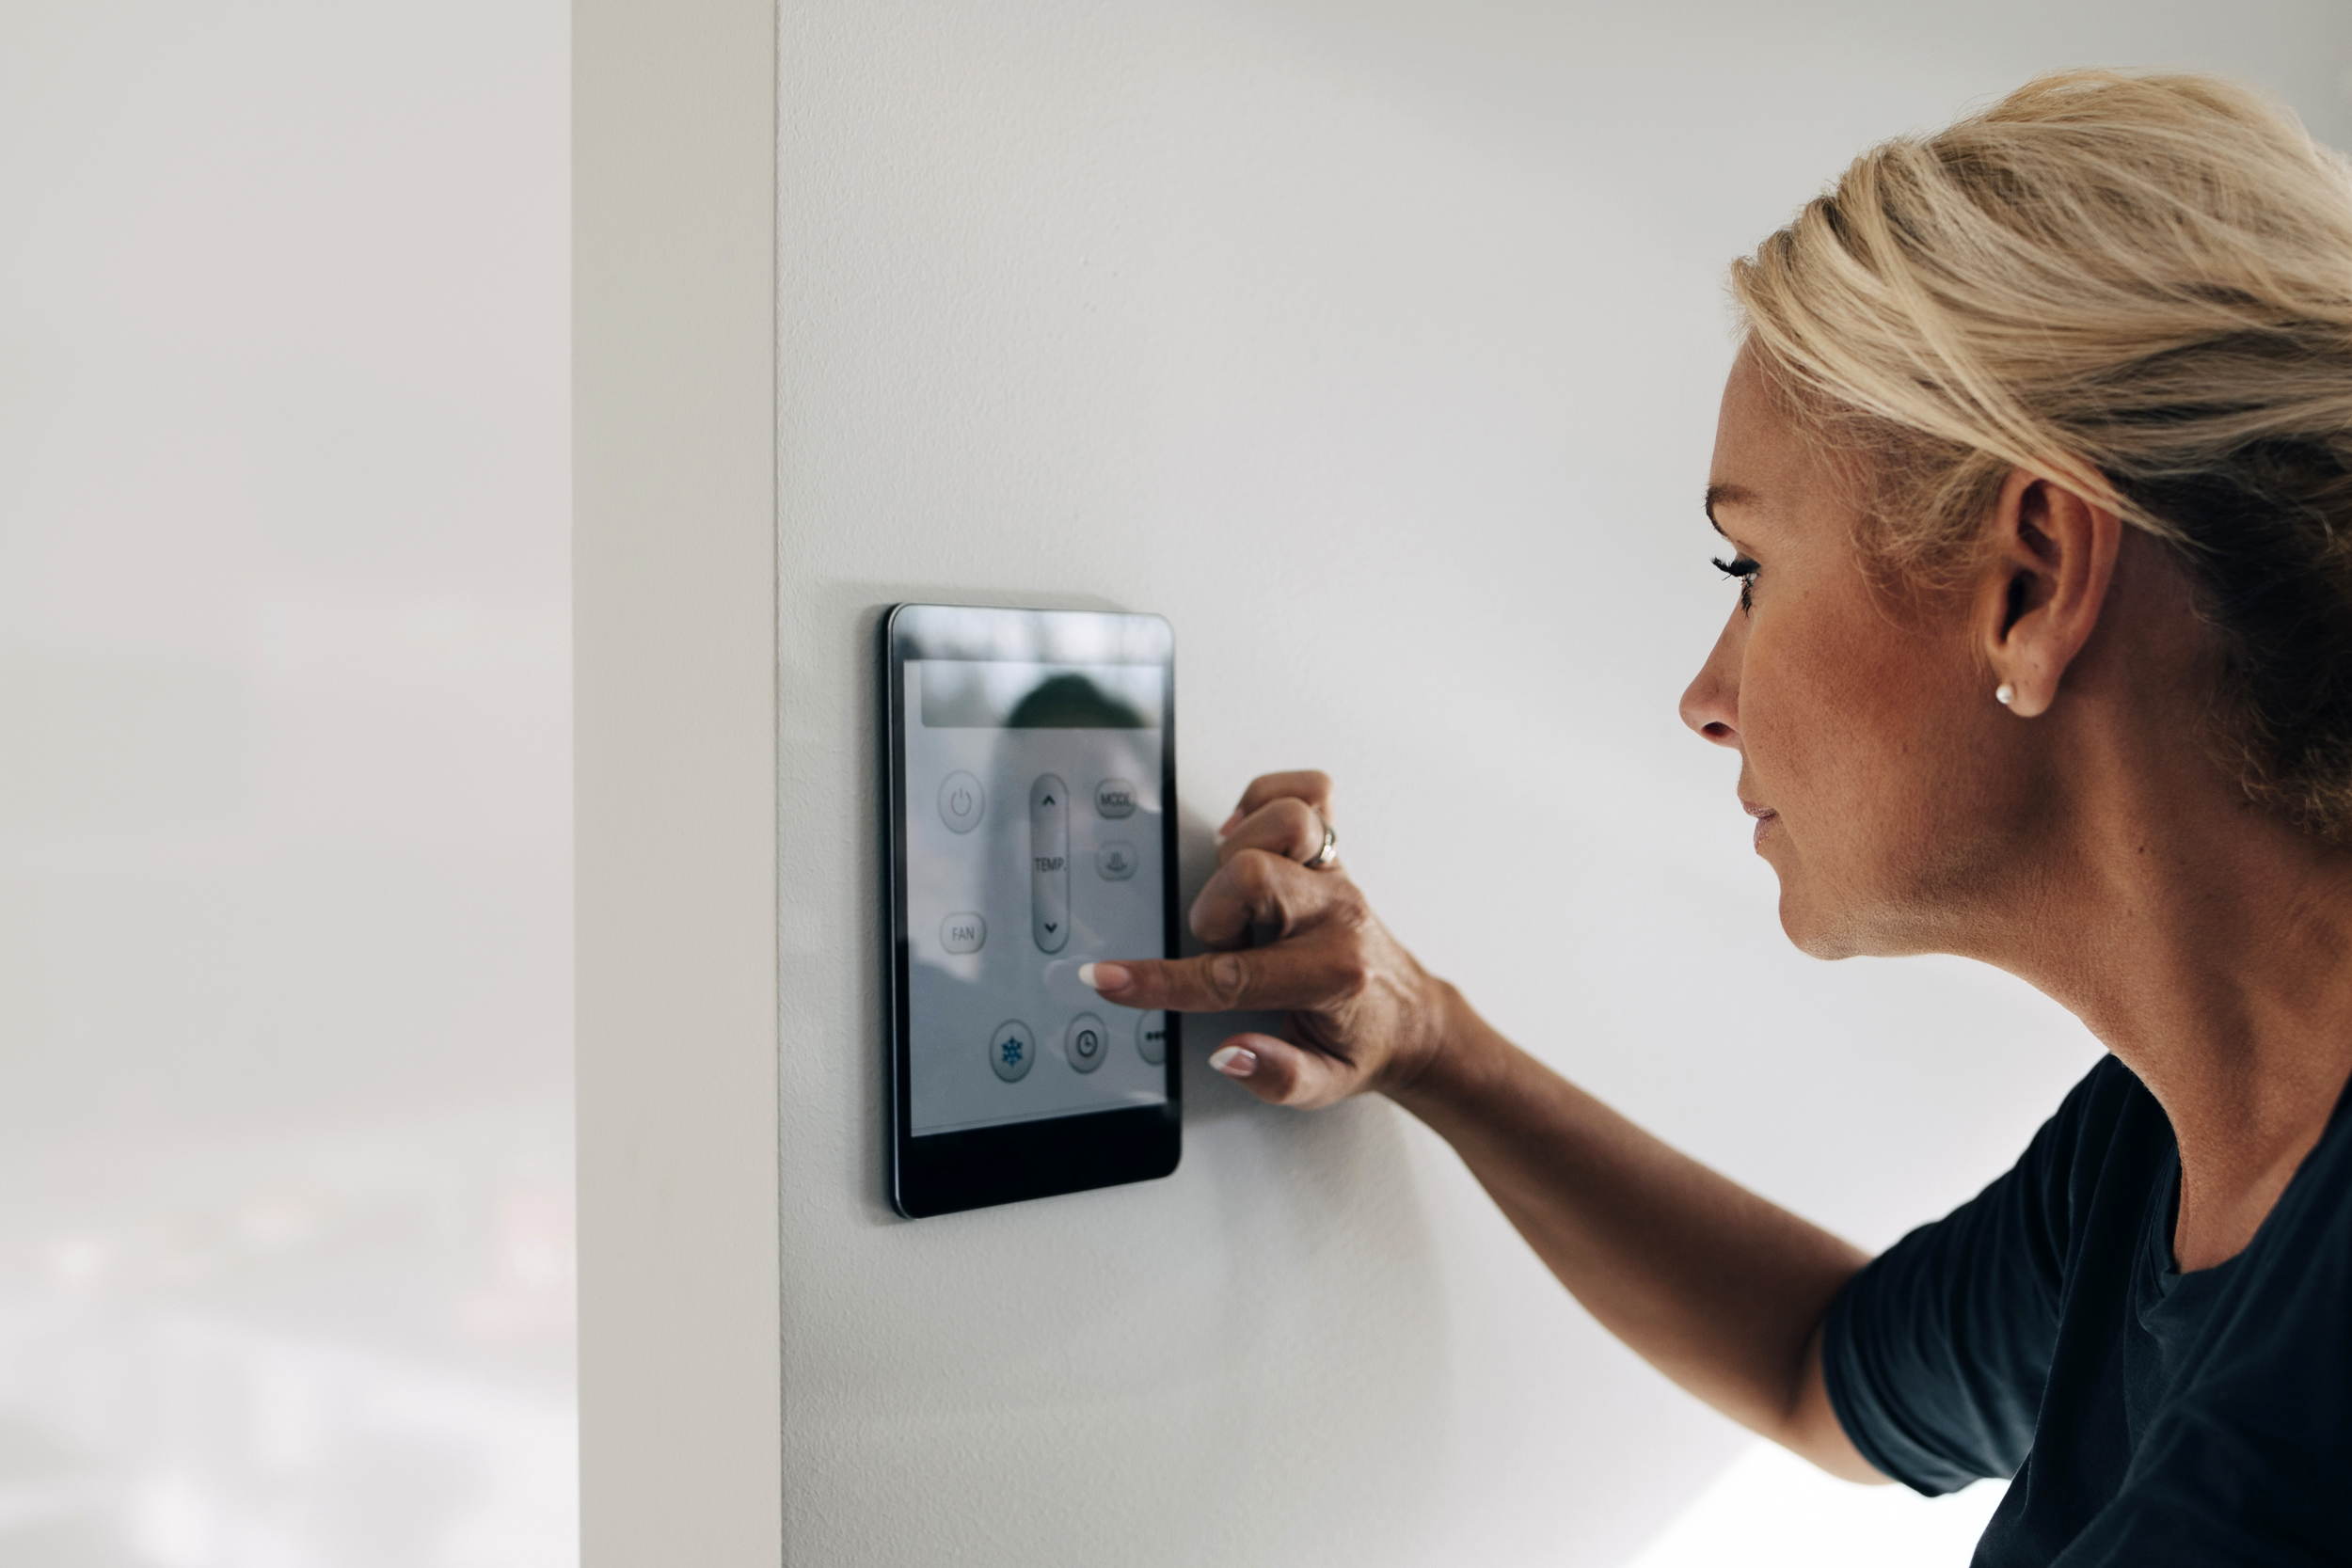 Best Smart Thermostats In 2020 According To Experts